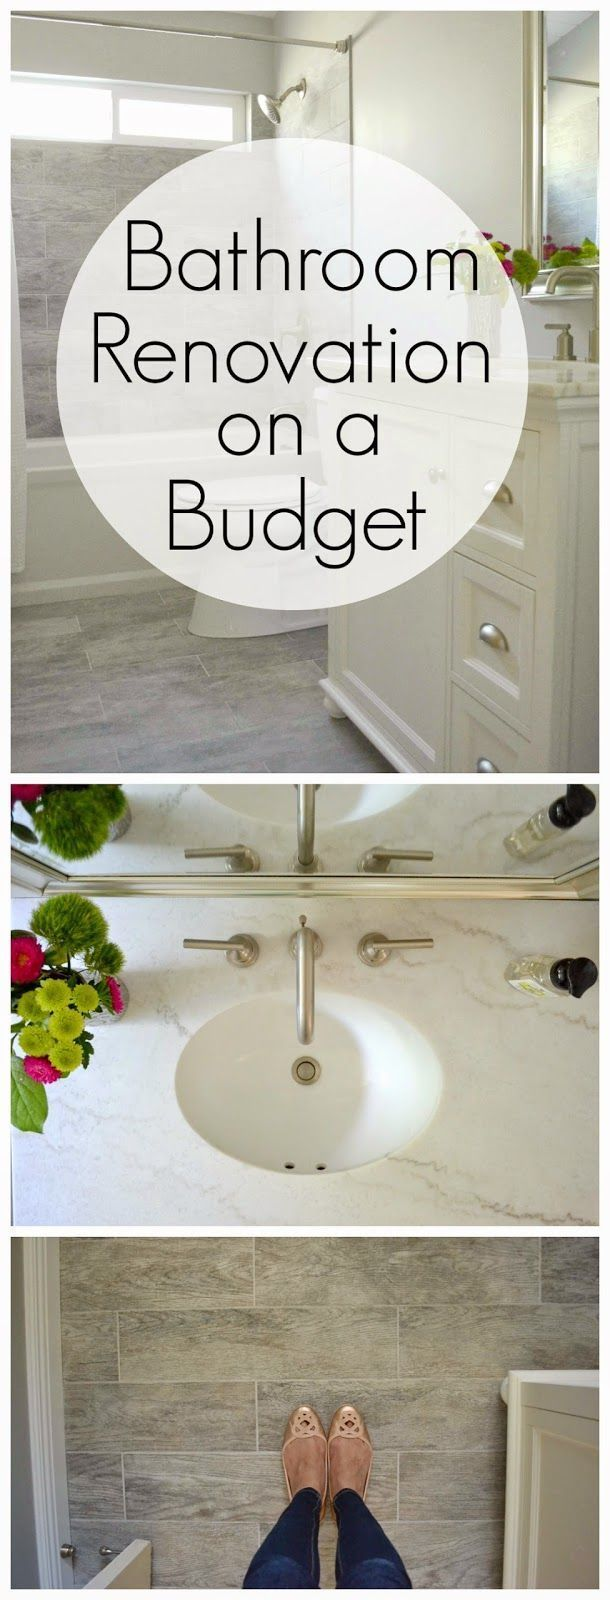 Renovate bathrooms - Mommy Testers How To Renovate A Bathroom On A Budget Inexpensive Bathroom Renovation